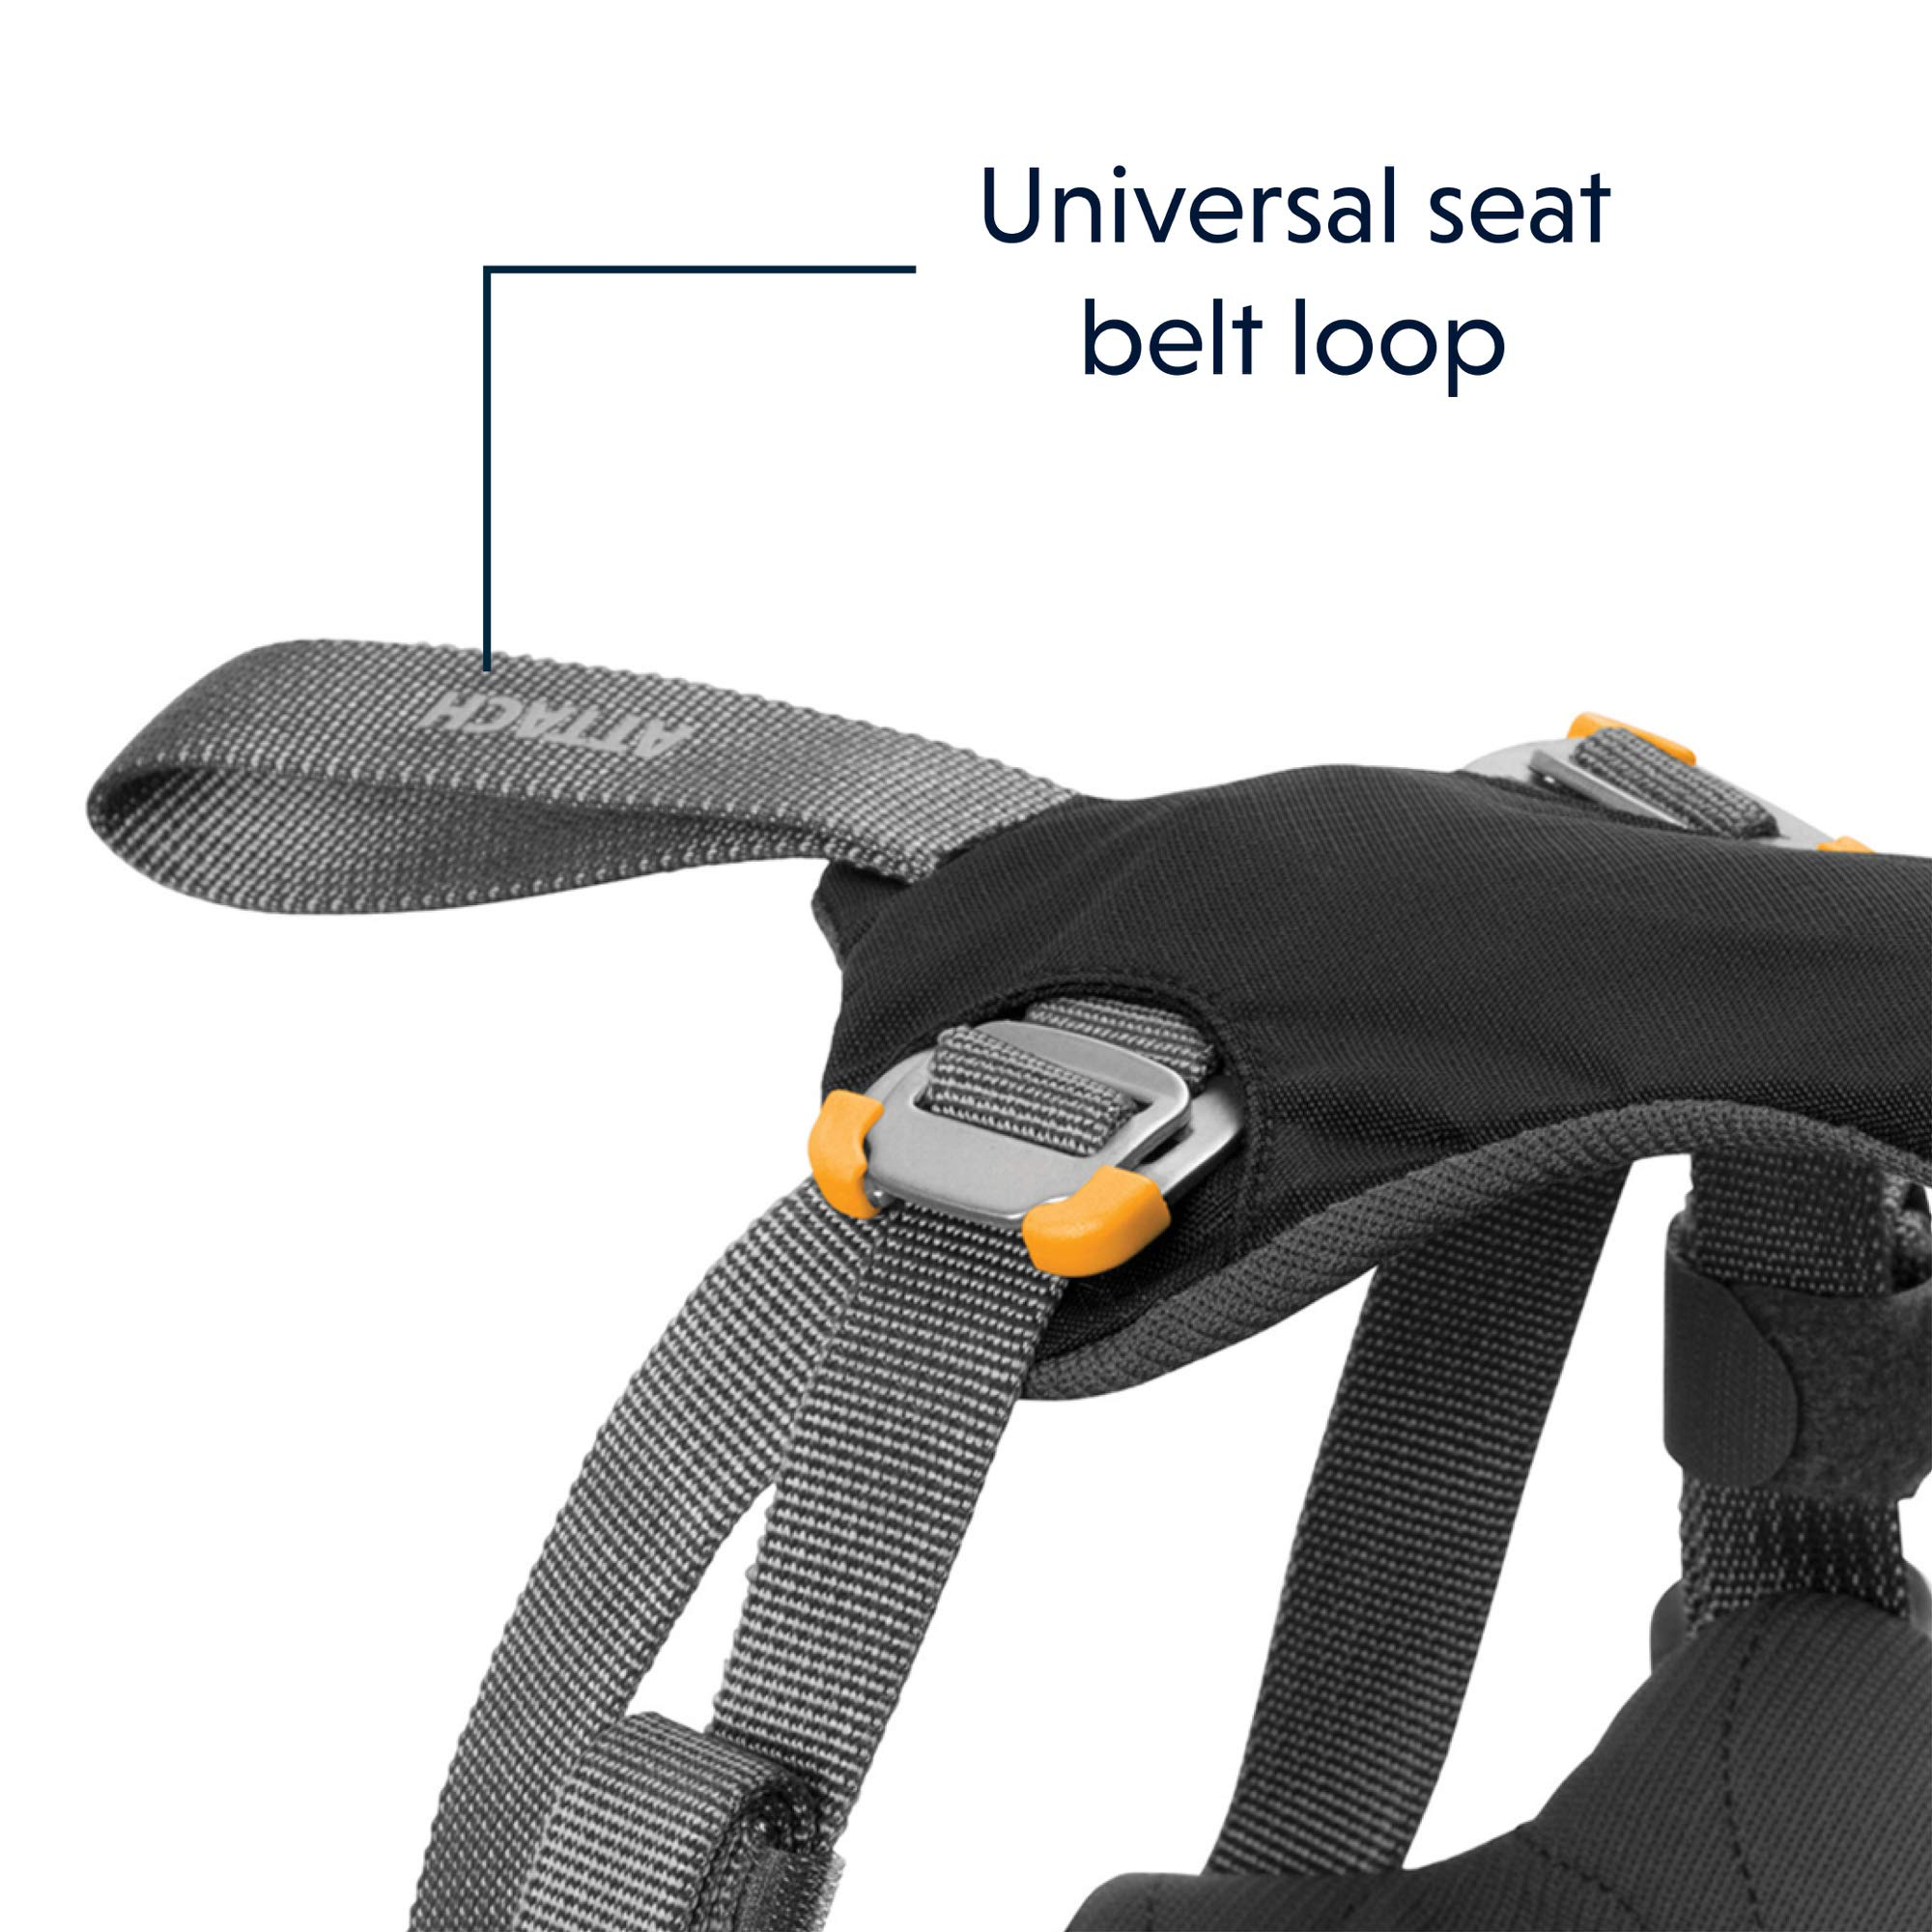 RUFFWEAR - Load Up, Dog Car Harness with Strength-Rated Hardware, Secure Vehicle Restraint, Universal Seat Belt Attachment, Obsidian Black, Medium by RUFFWEAR (Image #3)